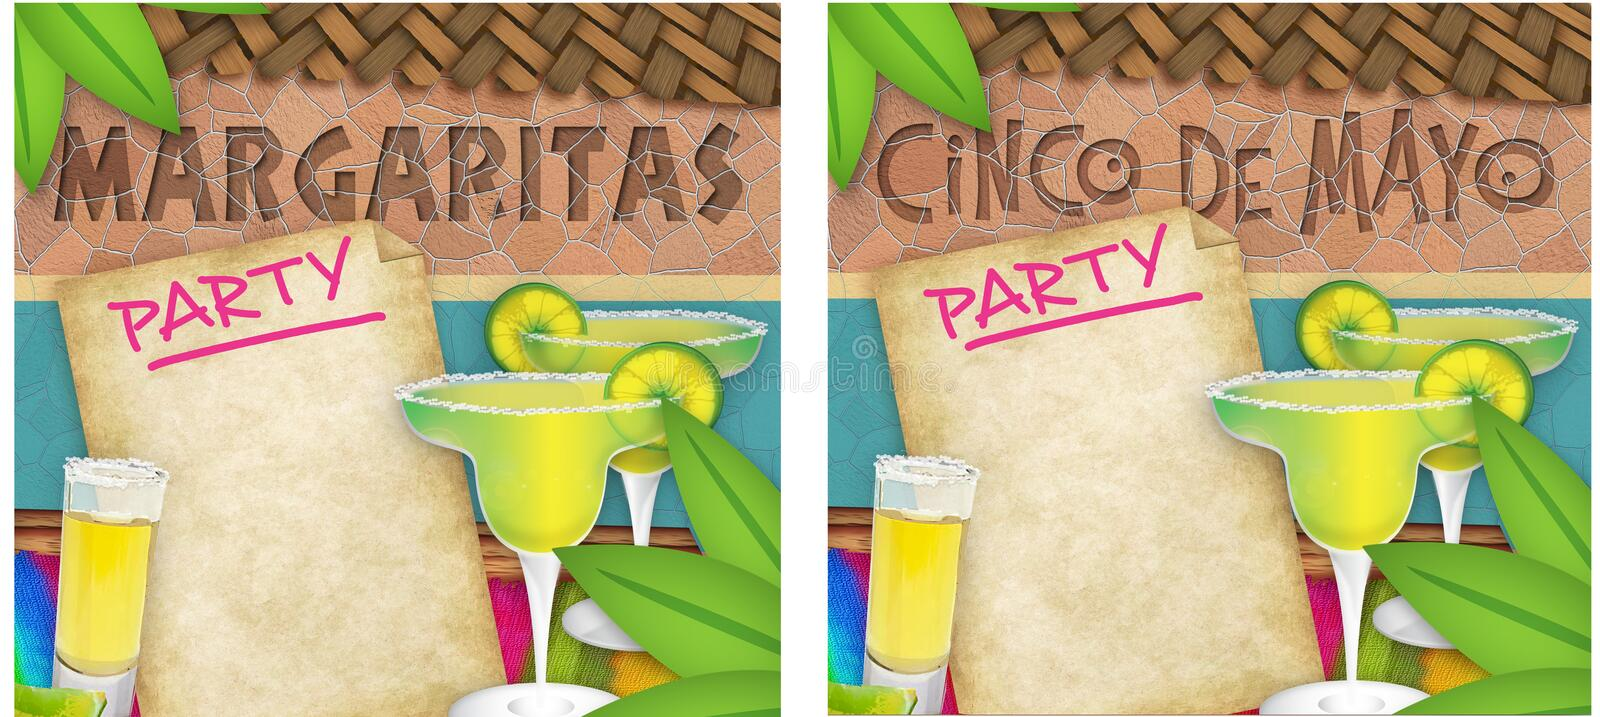 Cinco De Mayo Margarita Party illustration de vecteur